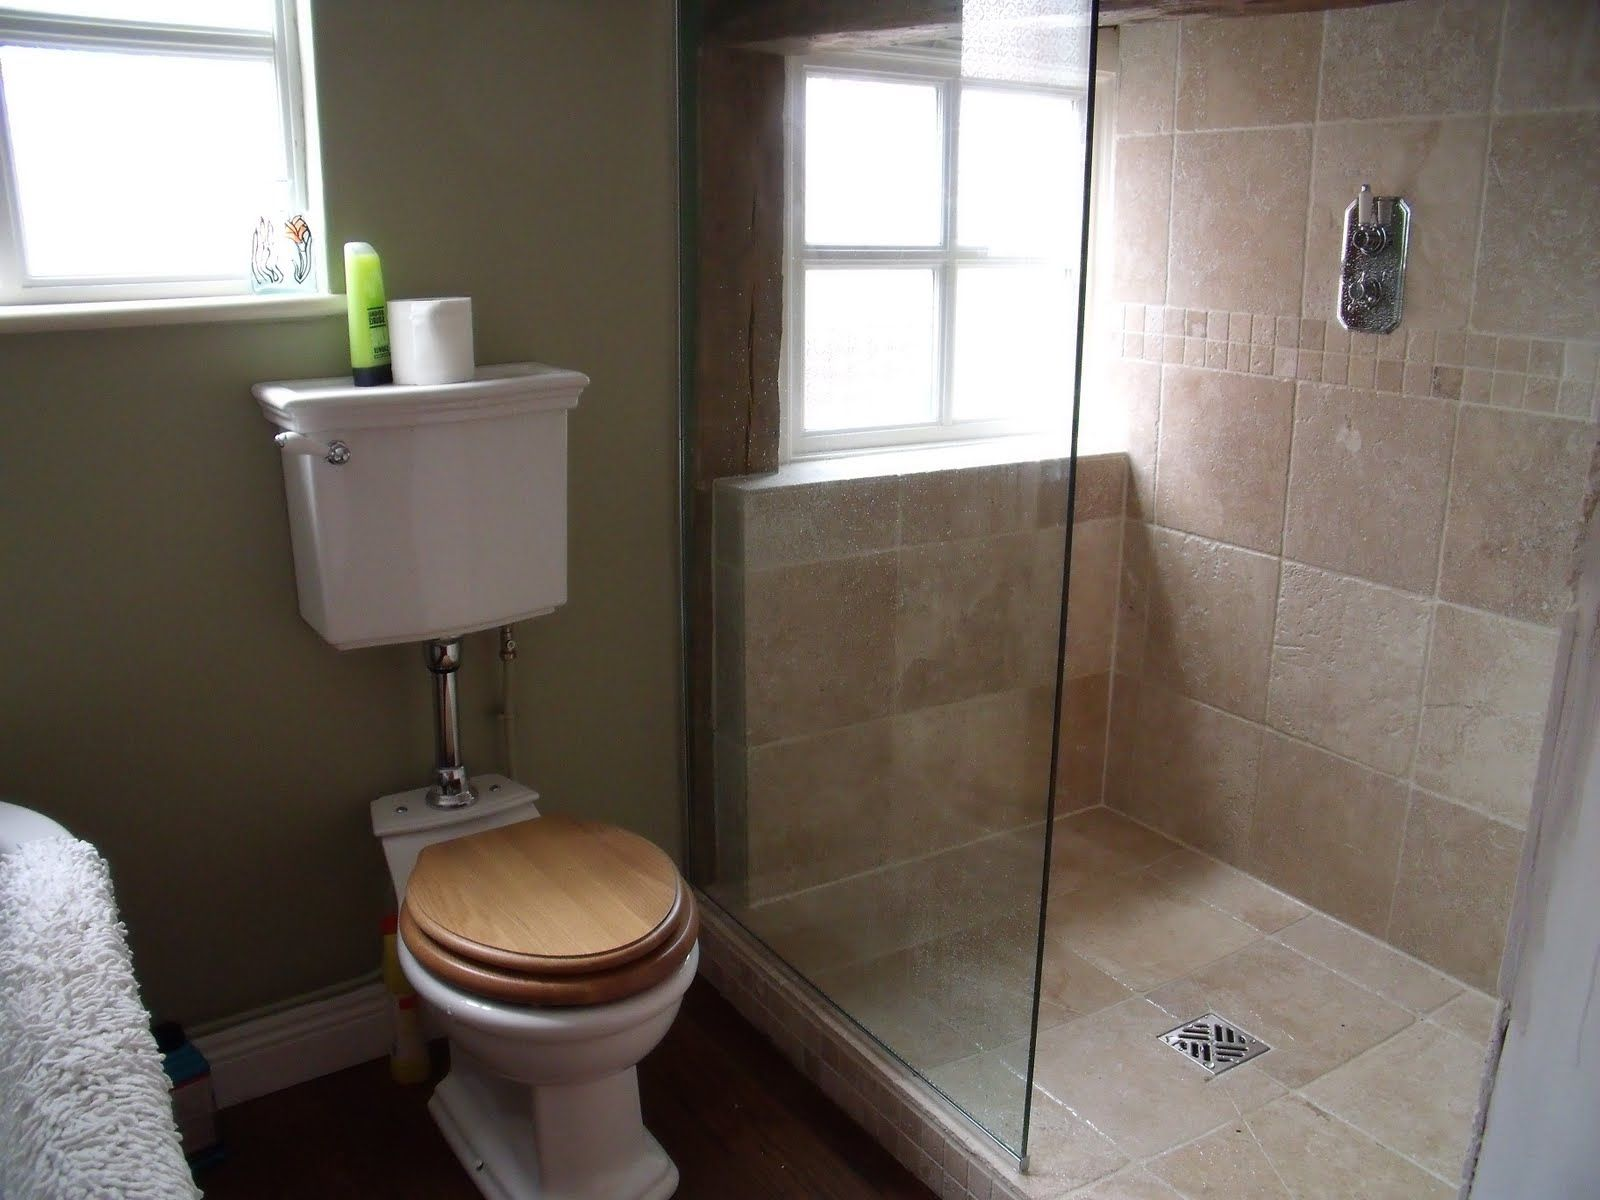 100 Bathroom Design Small Spaces Pictures Top Rated Interior